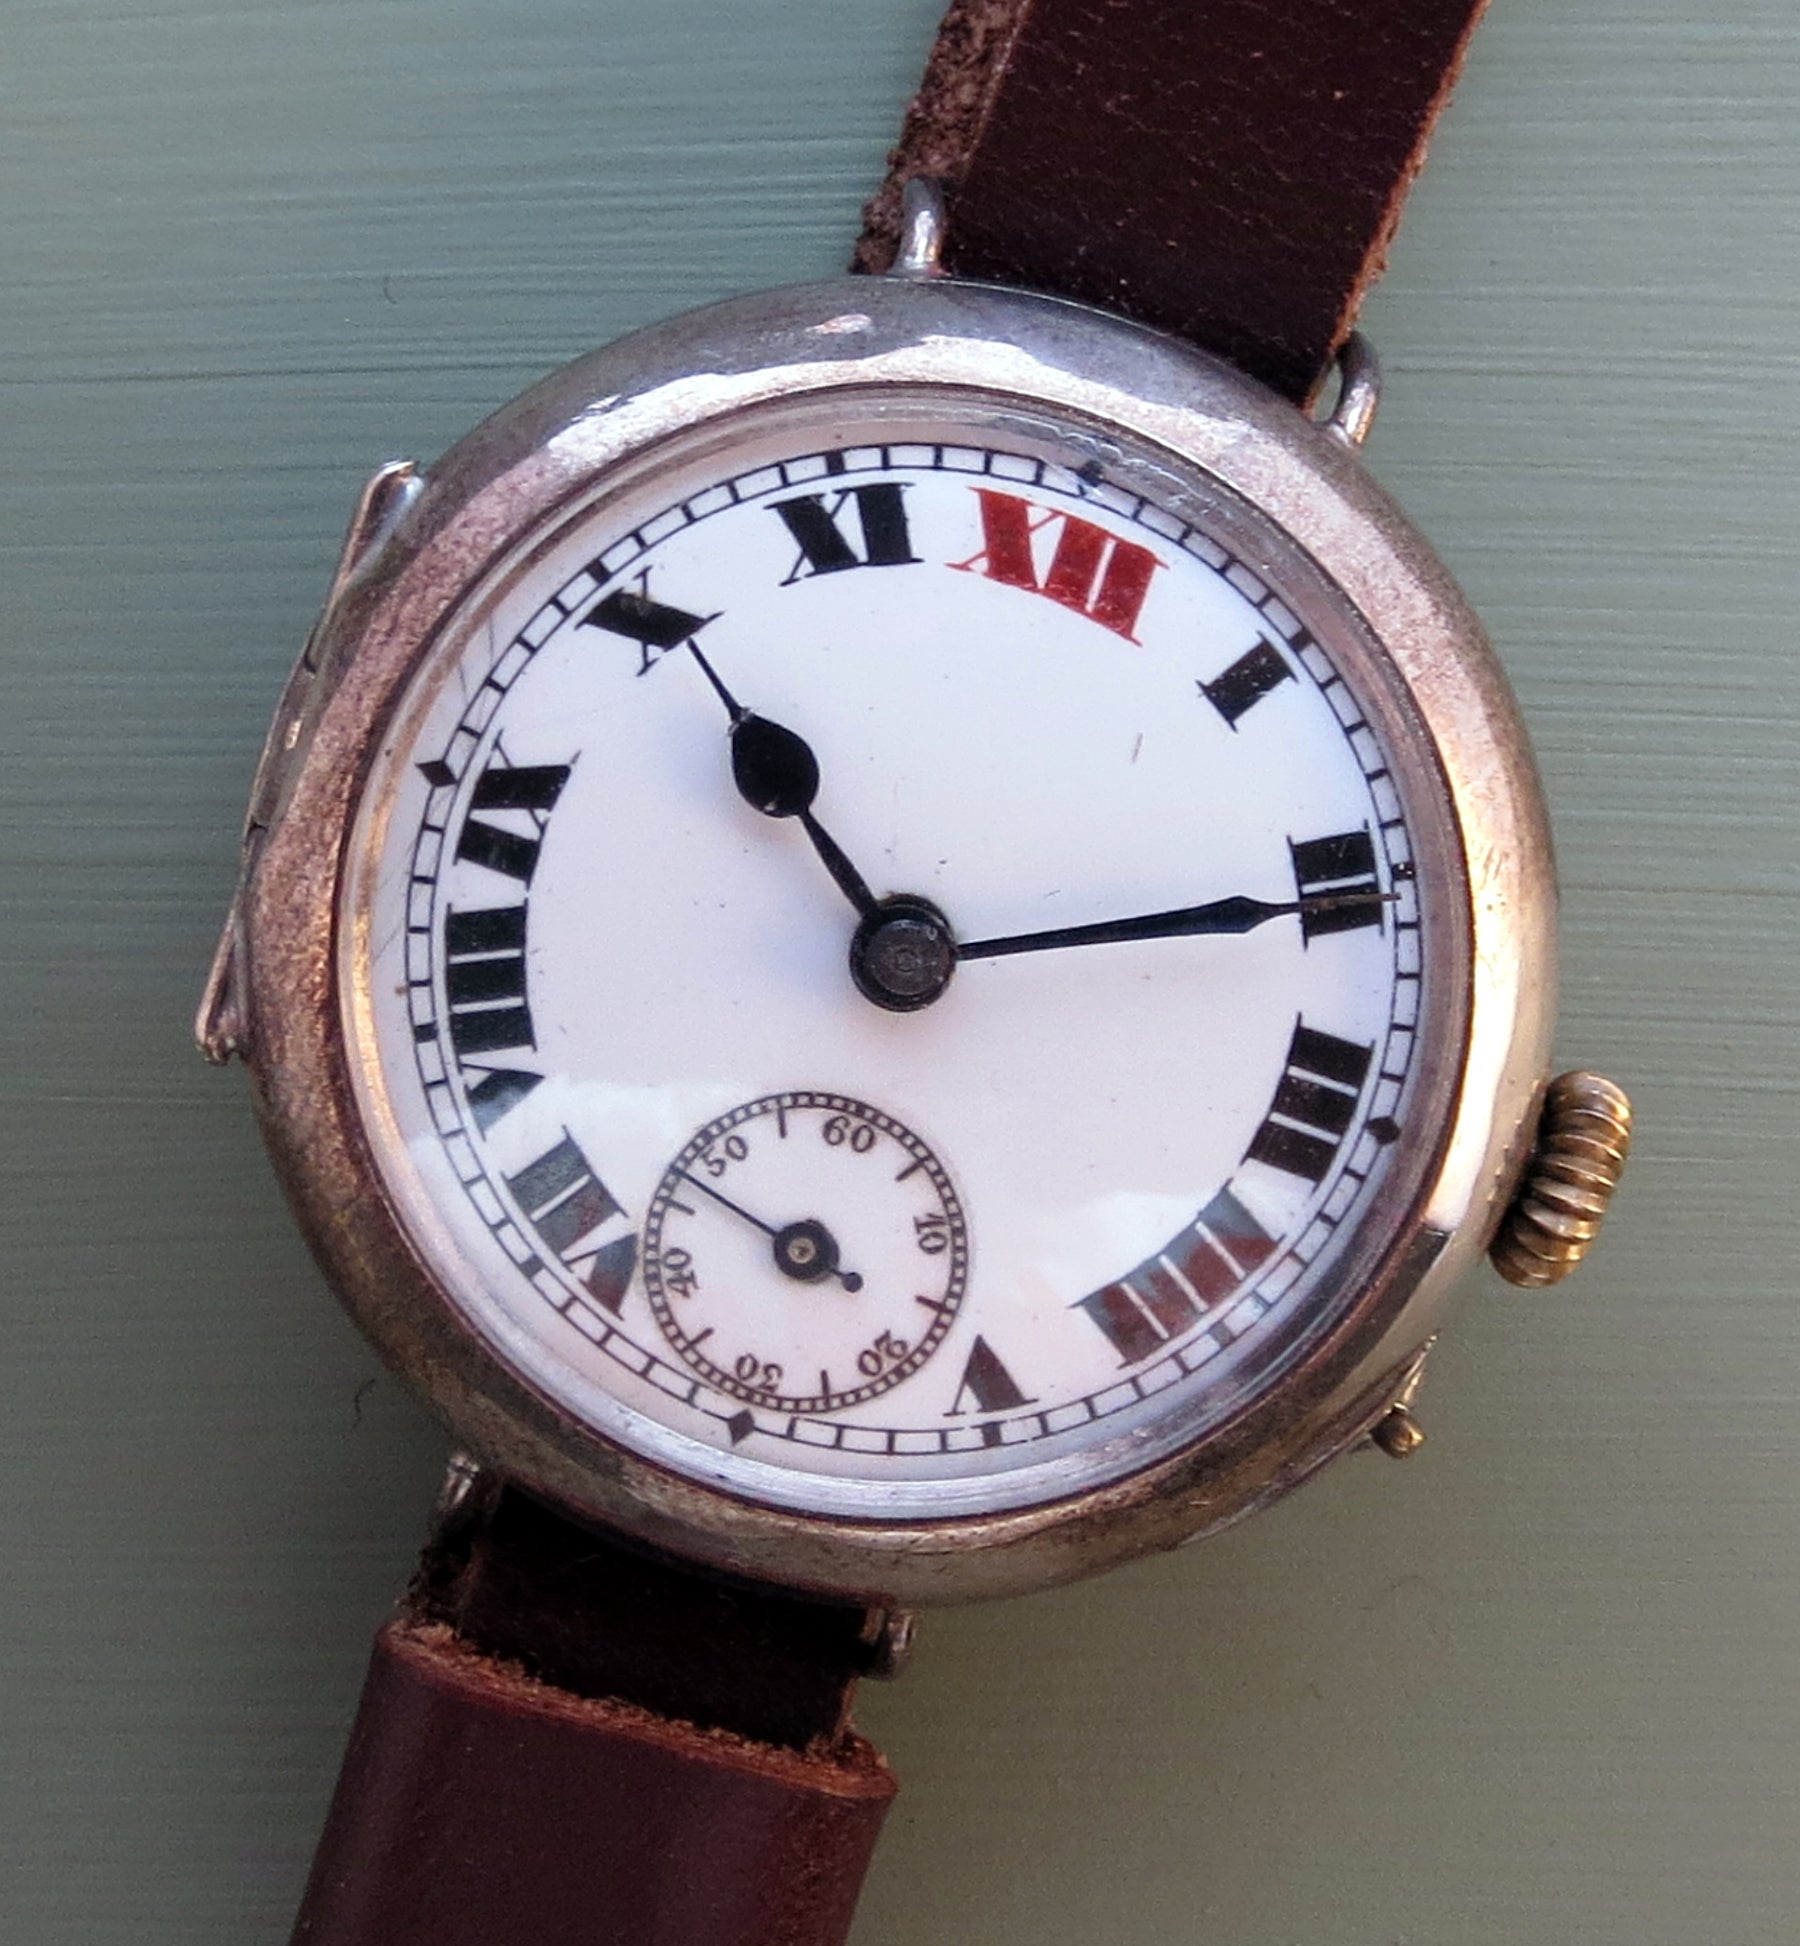 "Early trench watch in sterling silver with a 1914 hallmark. Note the enamel, the red 12 and the absence of luminous paint. The pin at 4 O'clock has to be depressed to allow the time to be set, a so called ""pin-set"" movement."